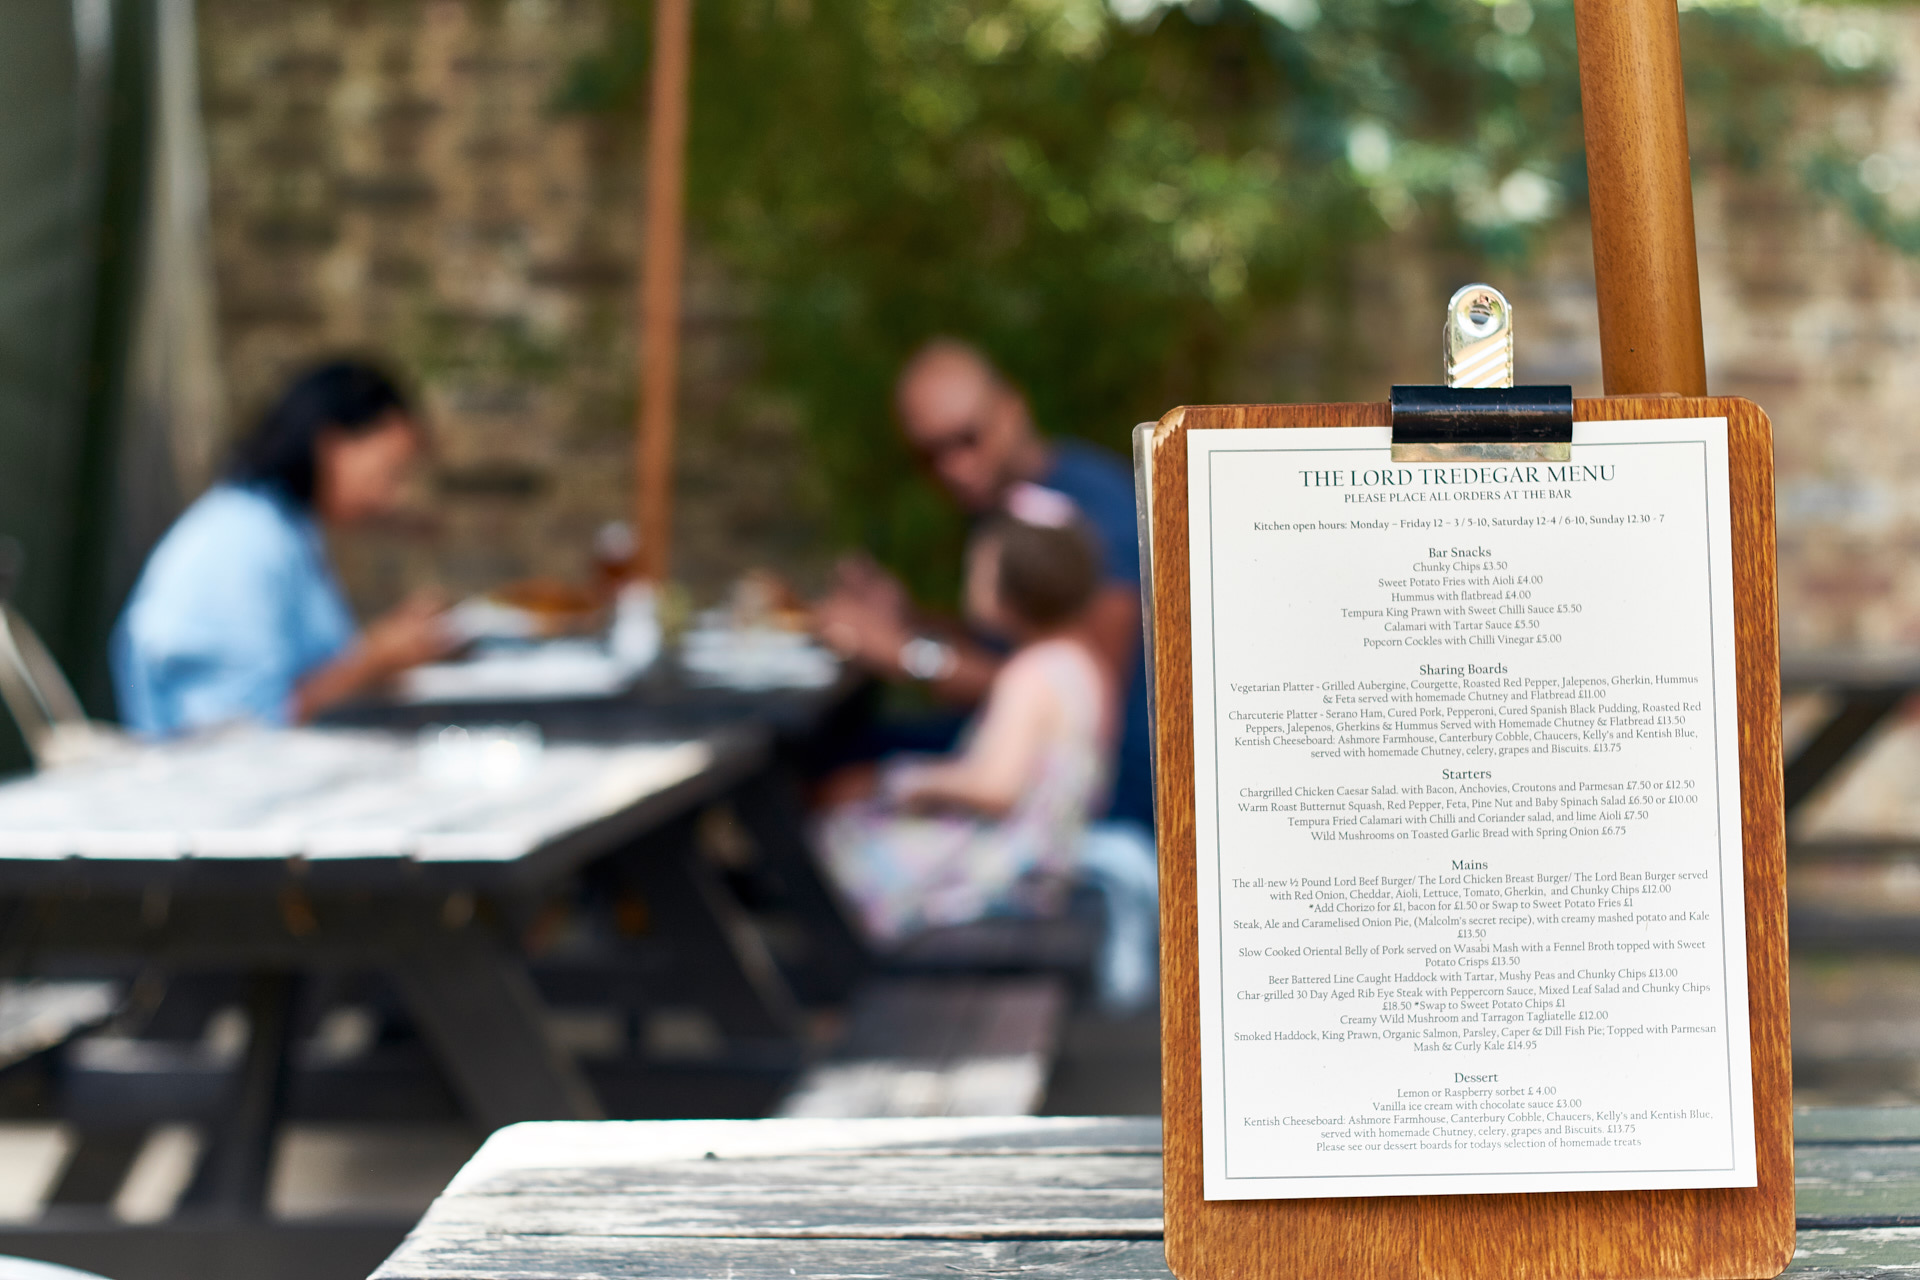 Menu in the garden.